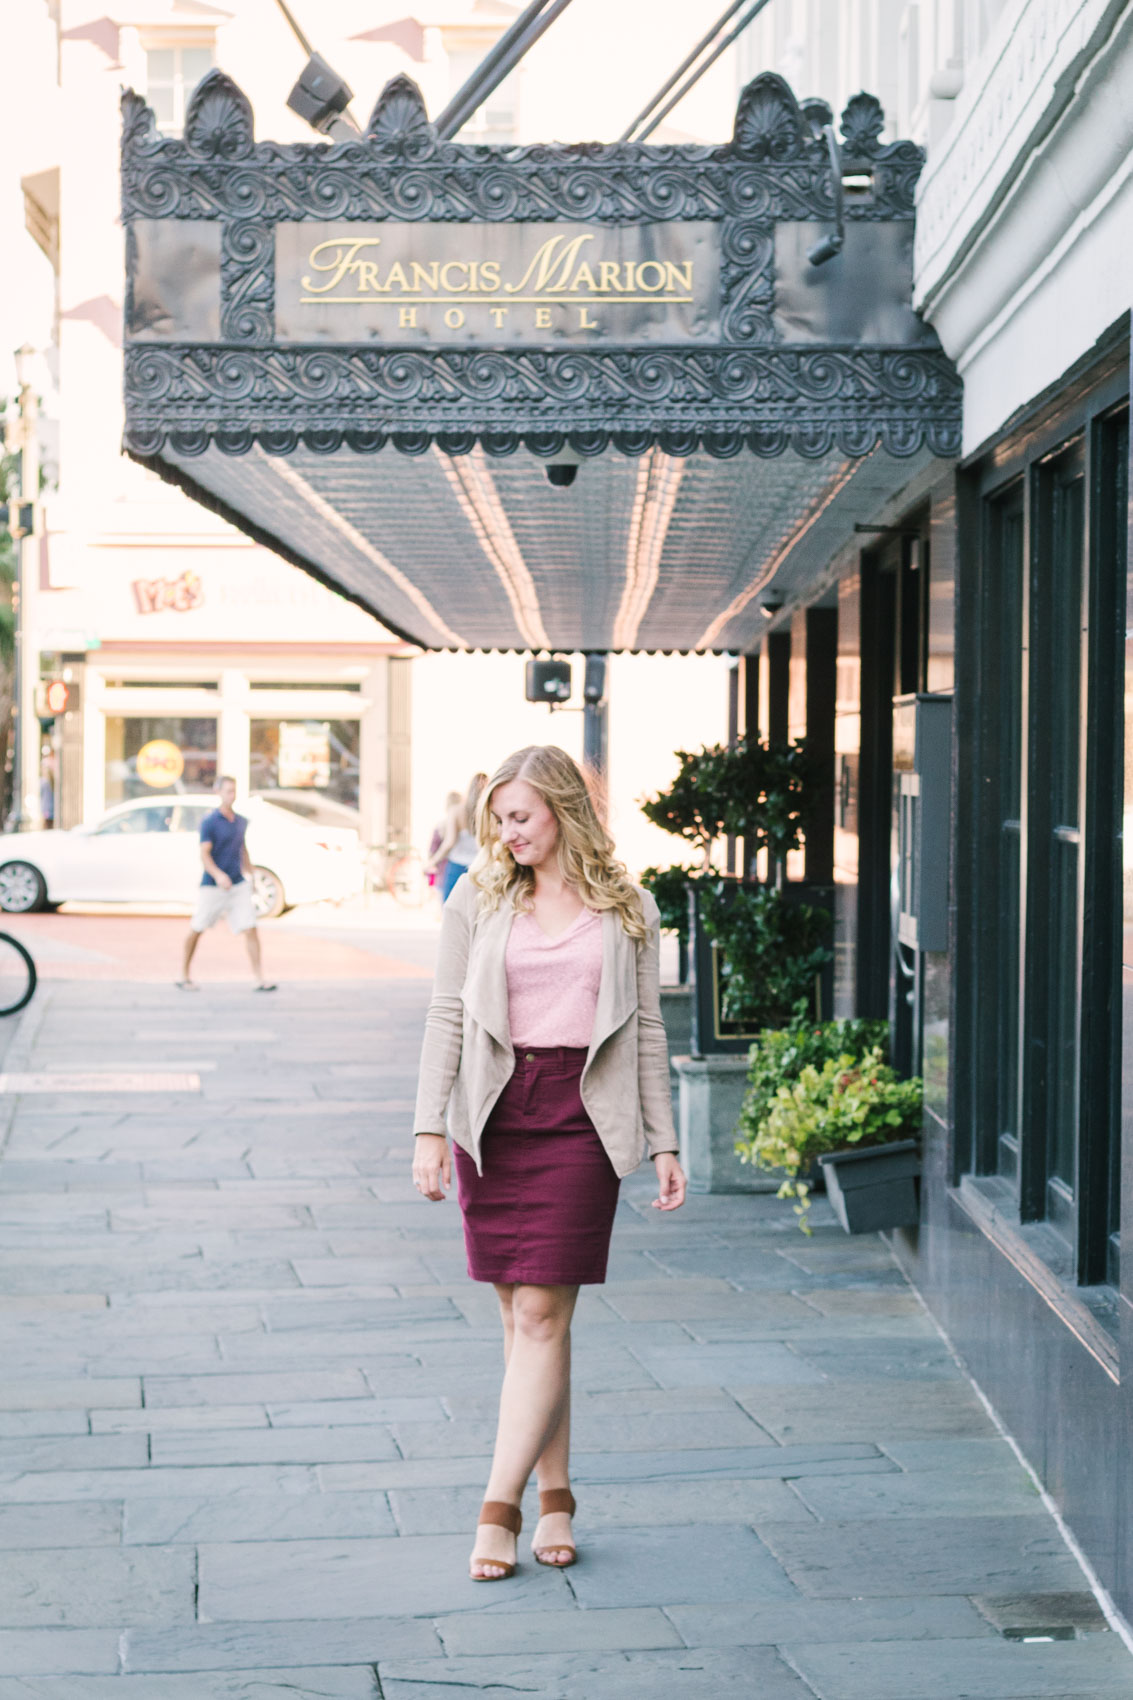 A burgundy skirt fall outfit at the Francis Marion Hotel Charleston, SC